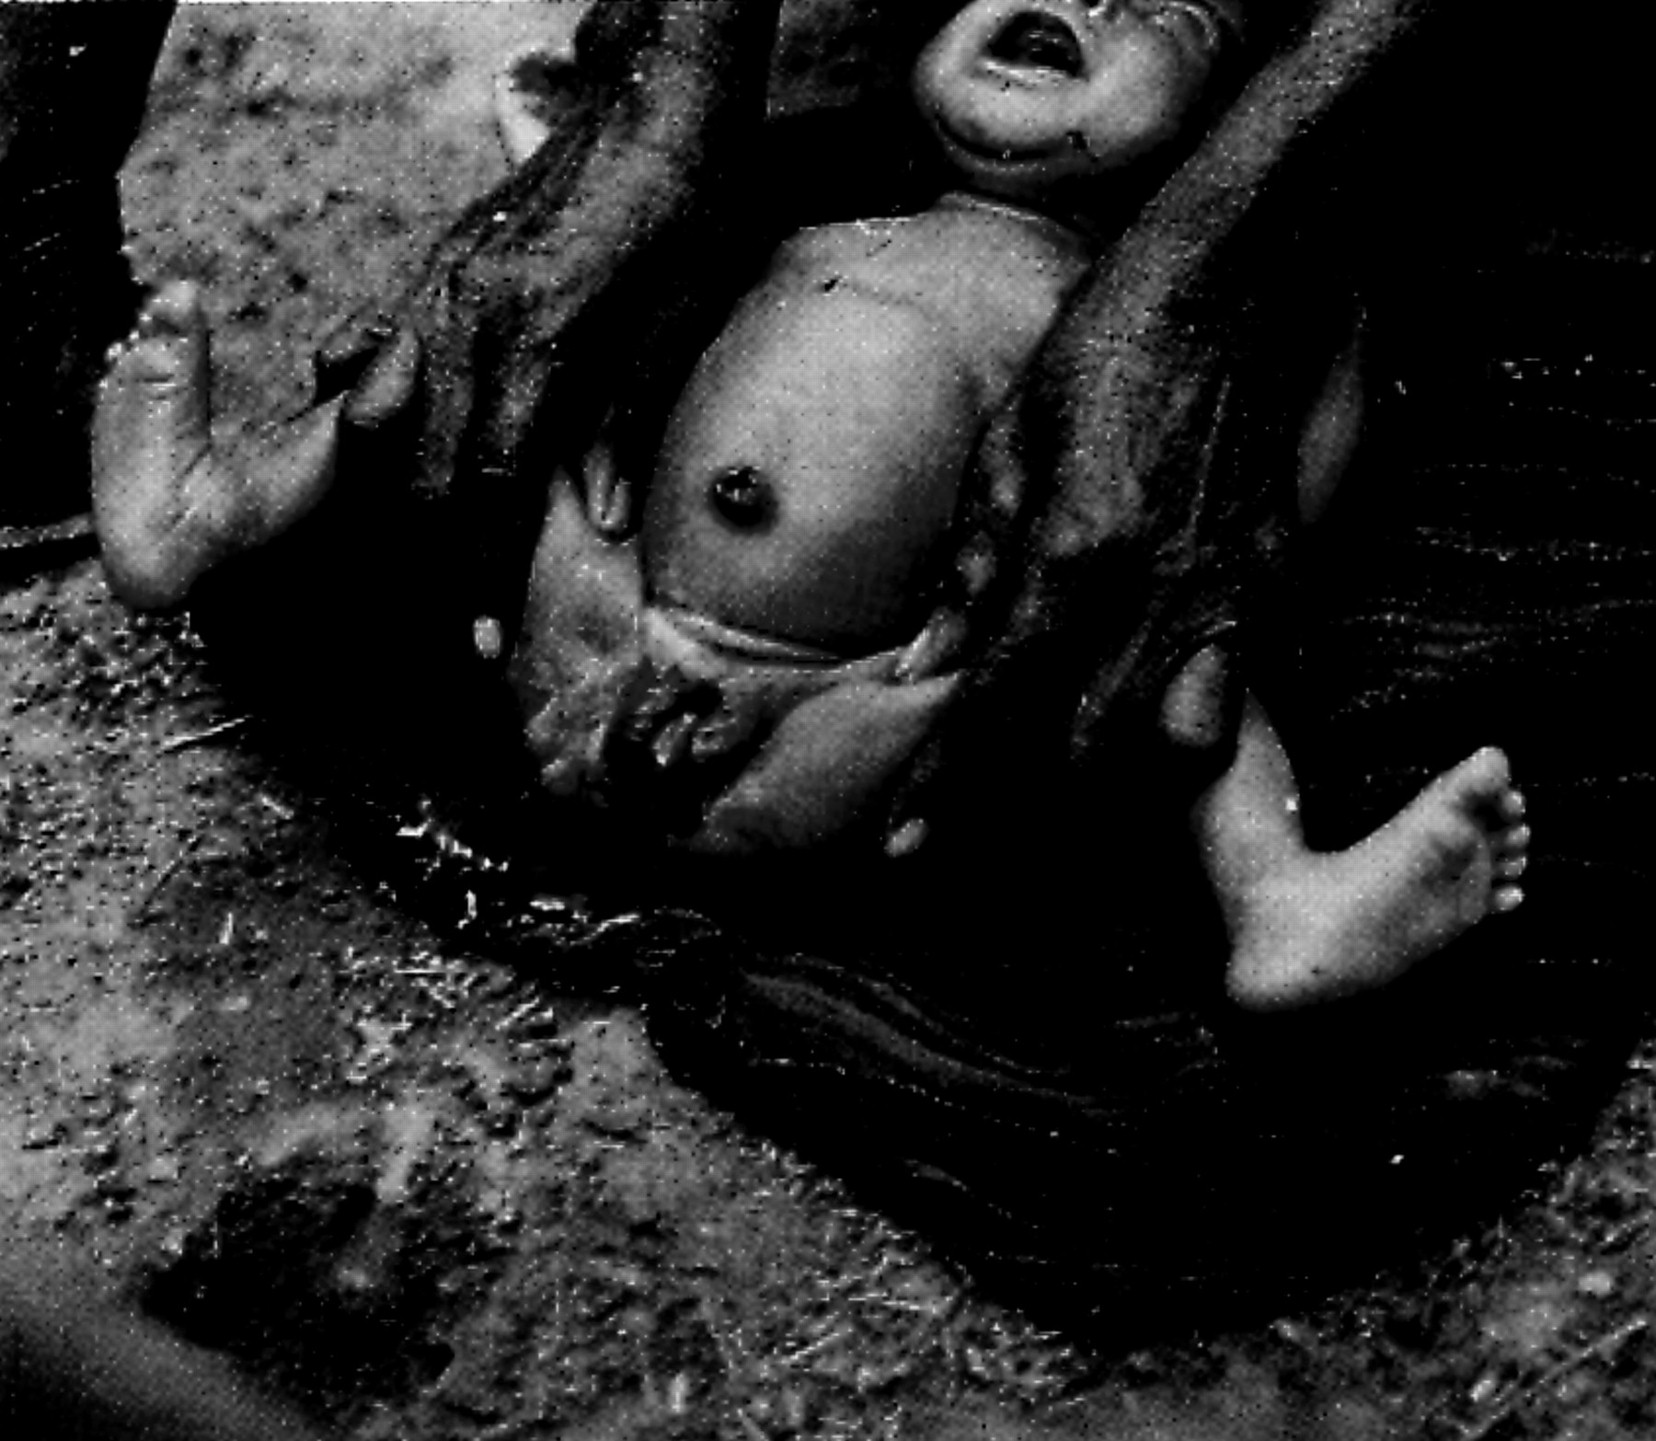 female circumcision procedure